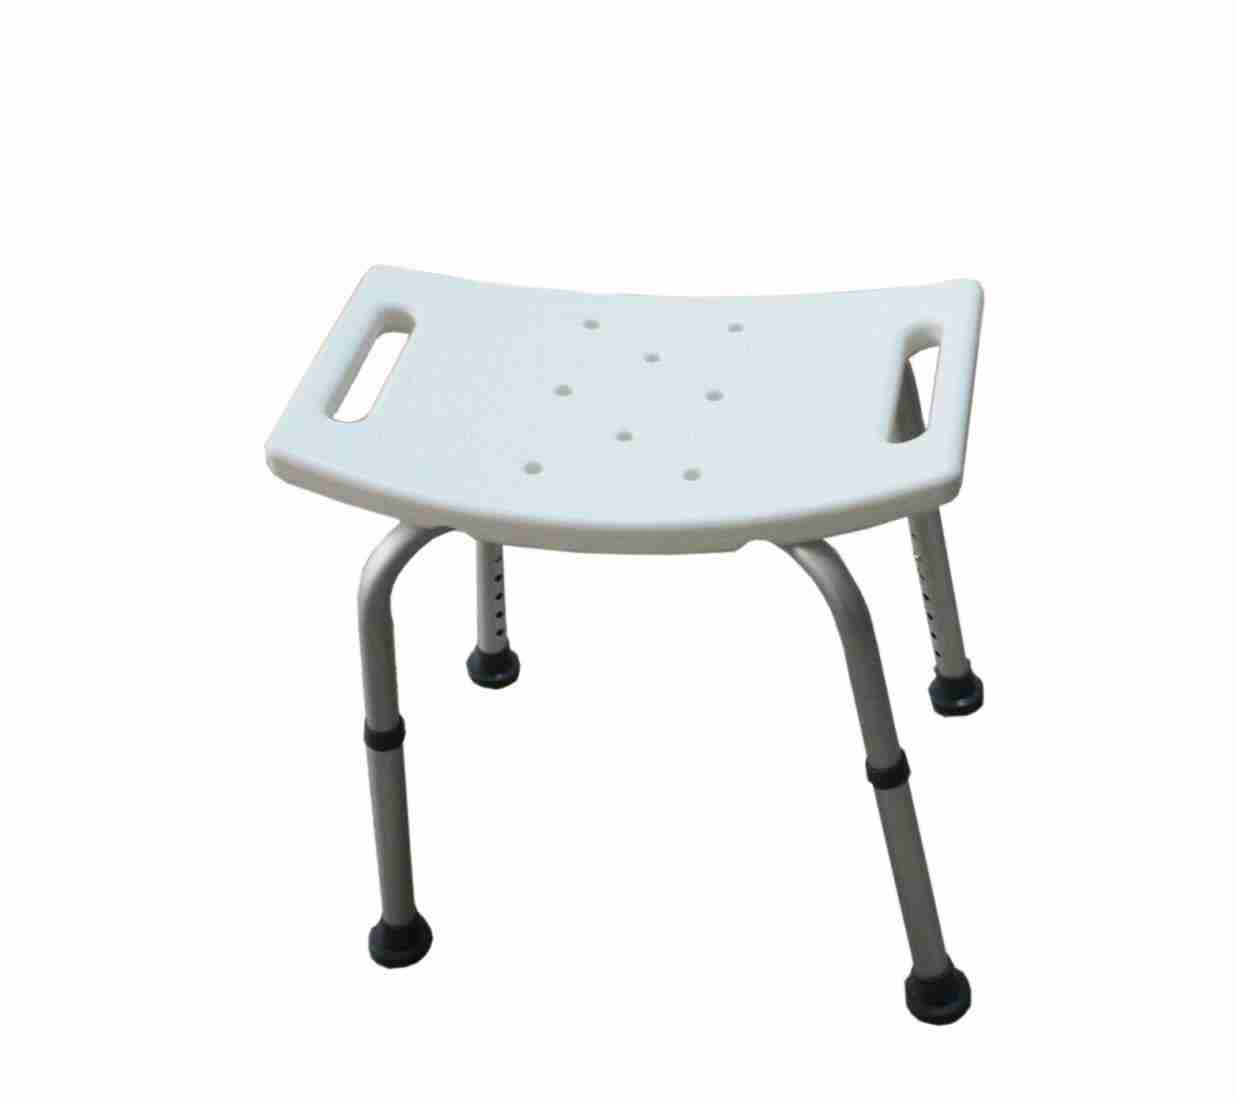 New post Trending-bathtub stool for seniors-Visit-entermp3.info ...